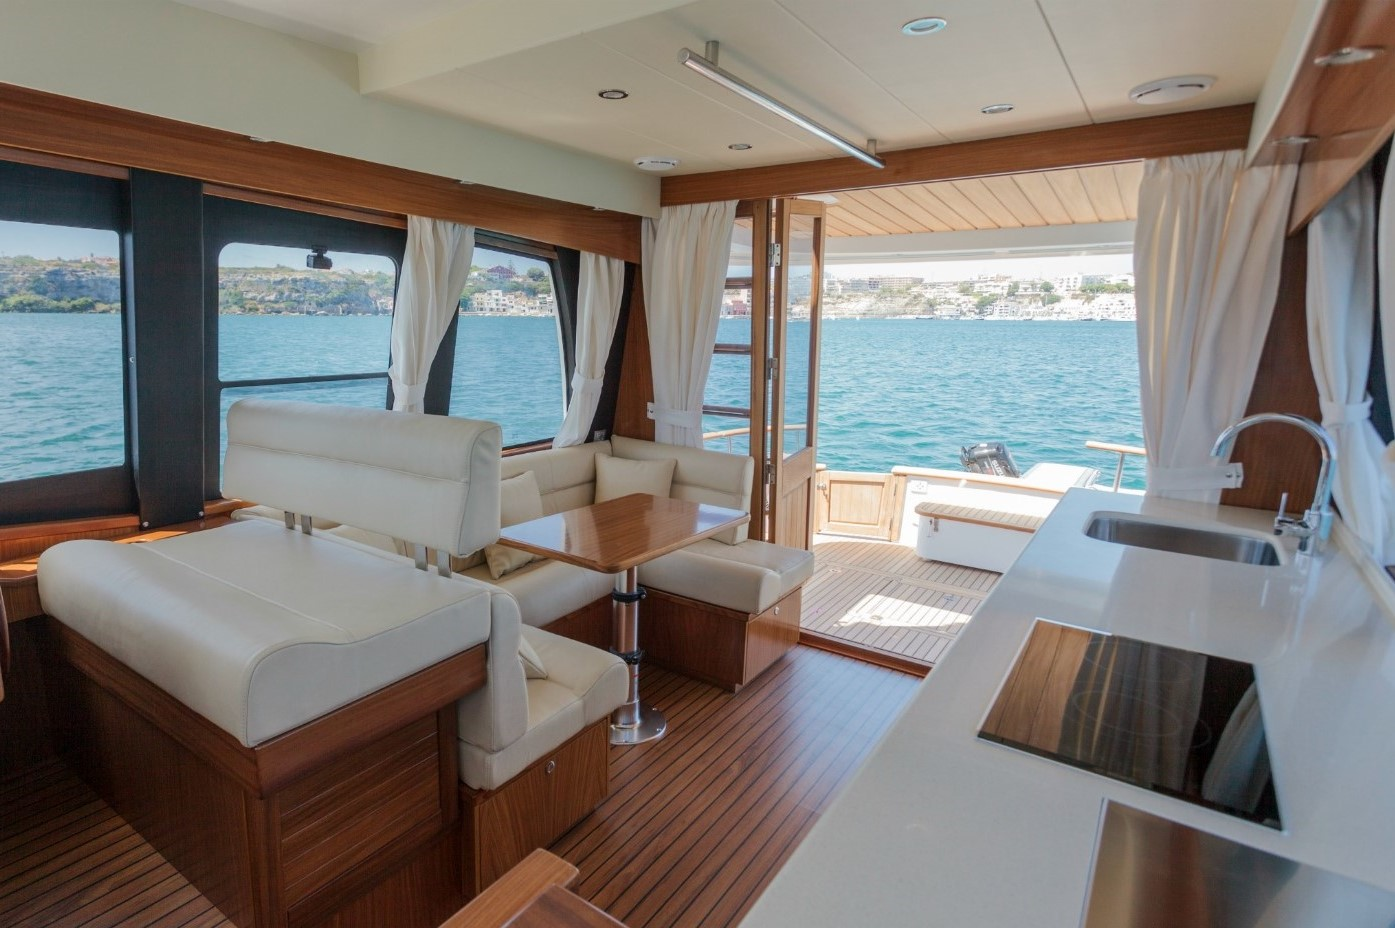 Minorca Islander 42 flybridge yacht for sale - Salon / Galley